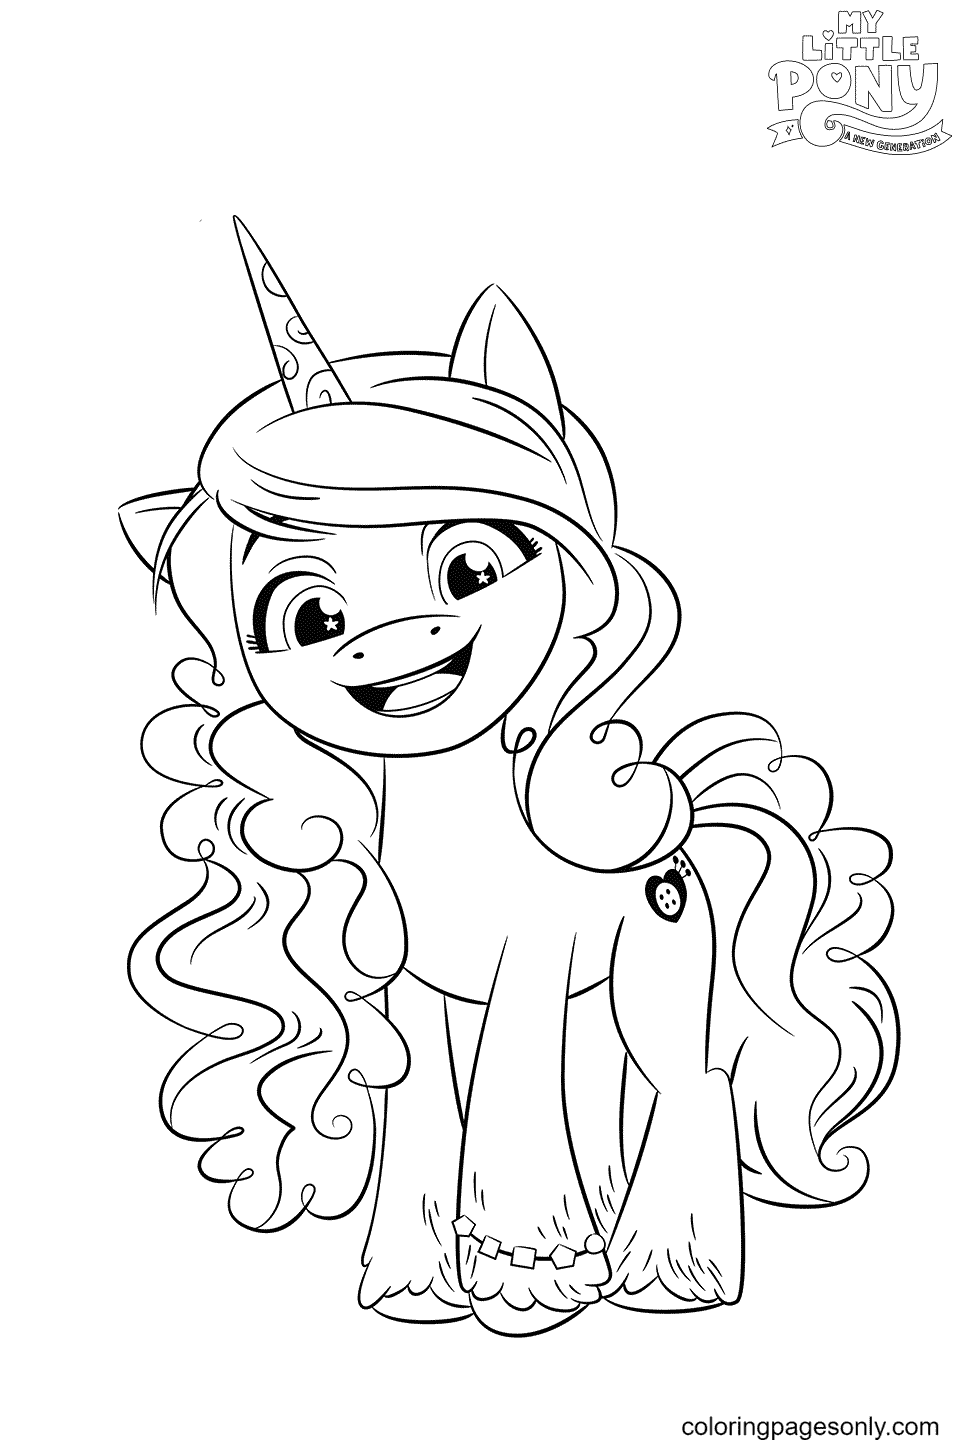 MLP G5 Izzy Moonbow Coloring Page